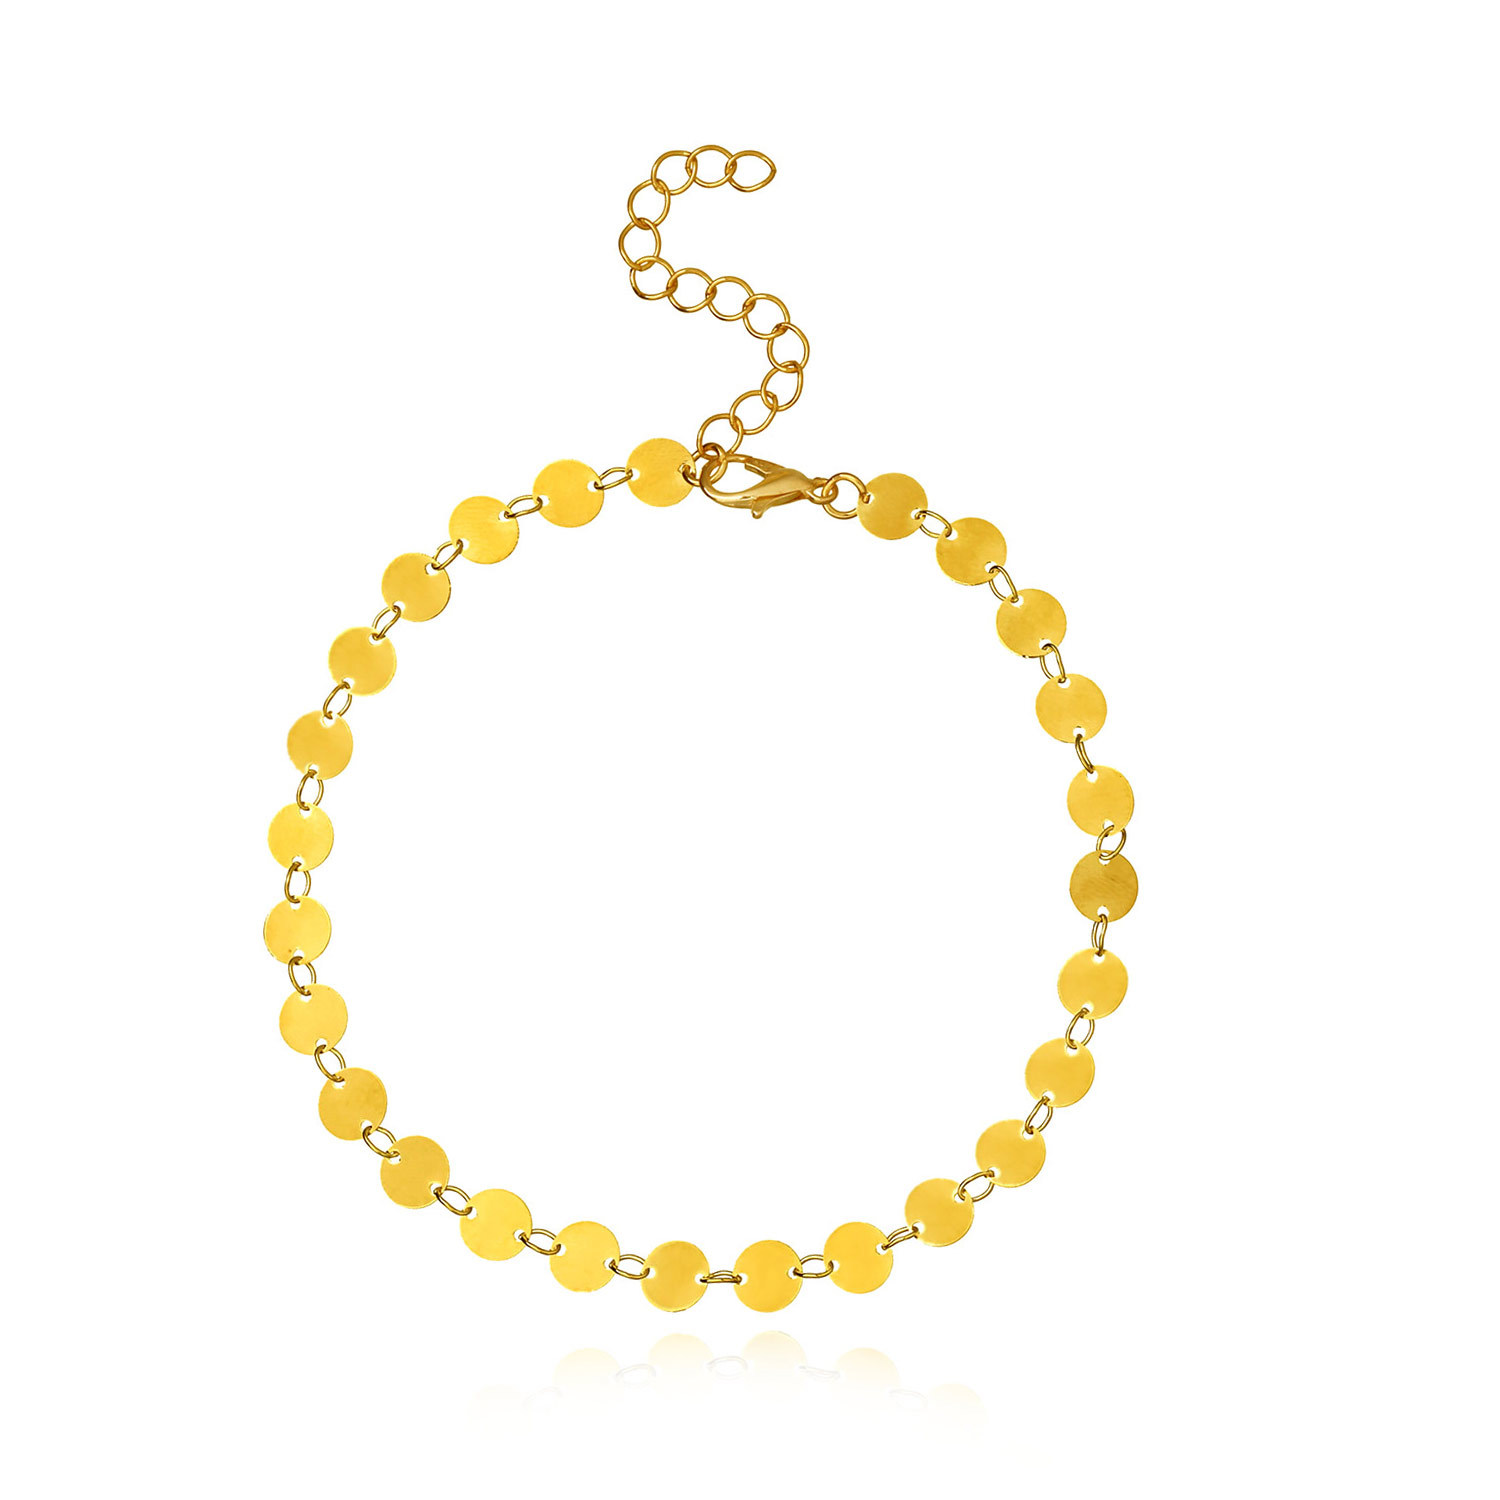 Mini Circle Design Anklet for Beach Stylish Look